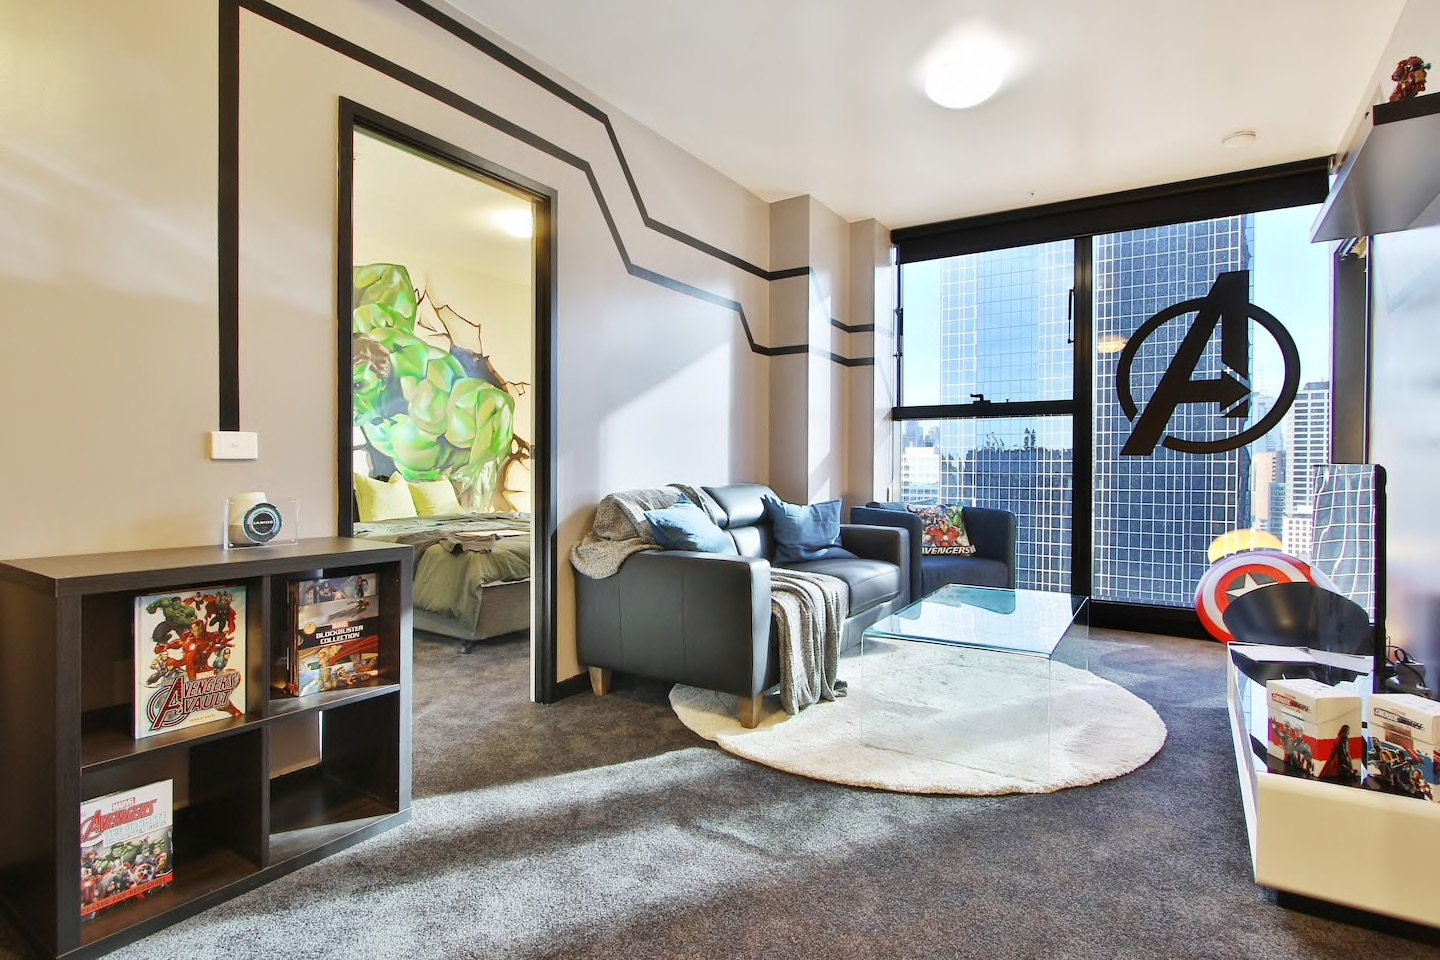 8 Marvel-Themed Airbnbs Around the Globe